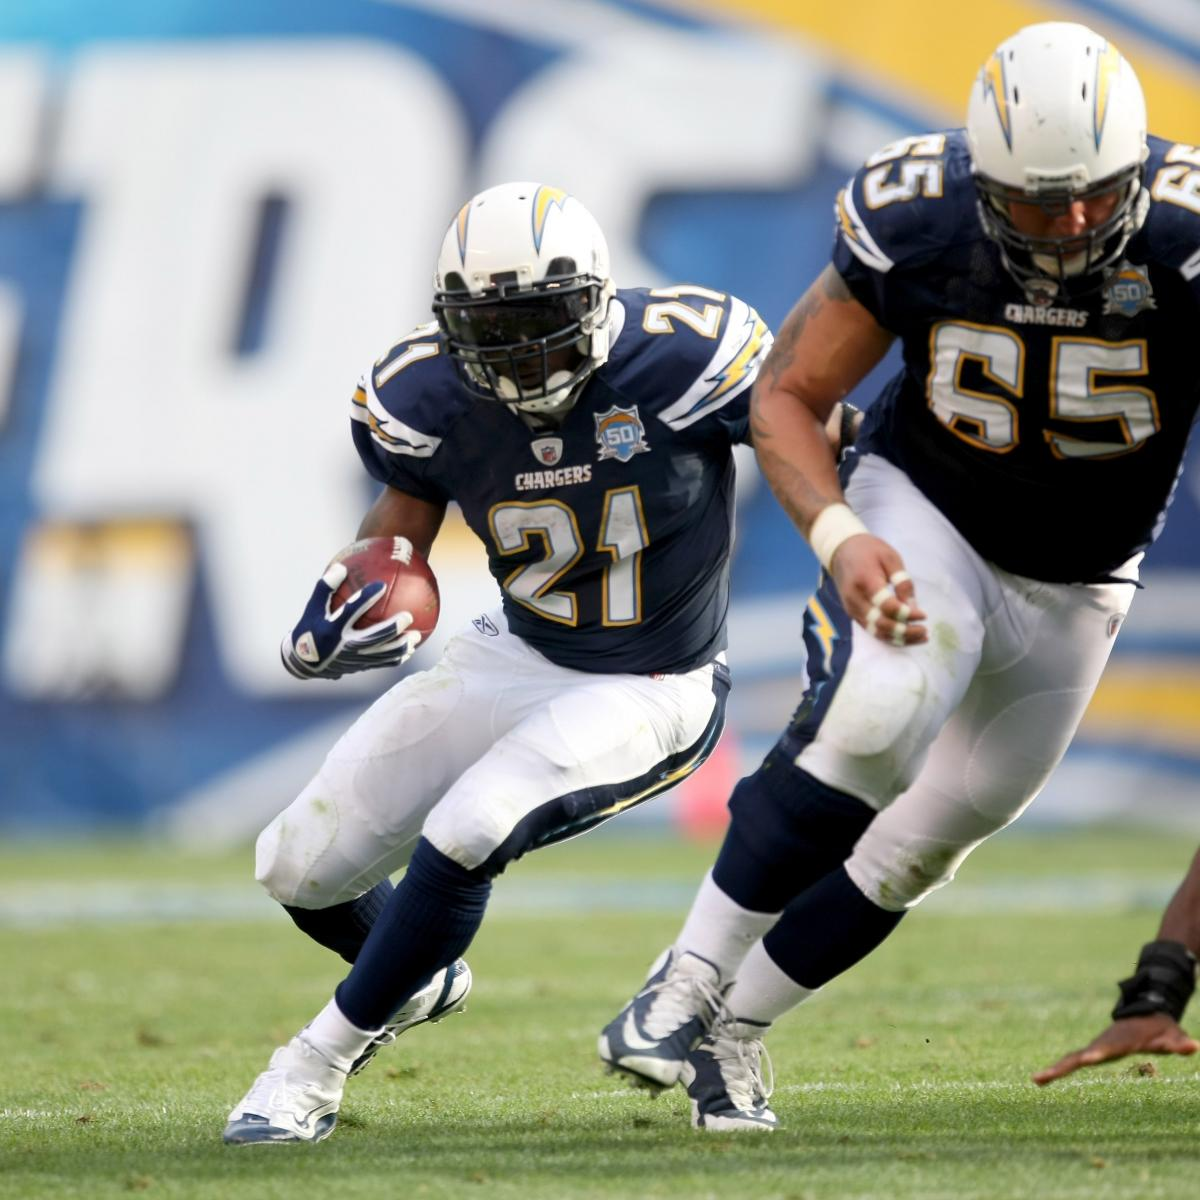 San Diego Chargers Facts: San Diego Chargers' All-Time Top 50 Players